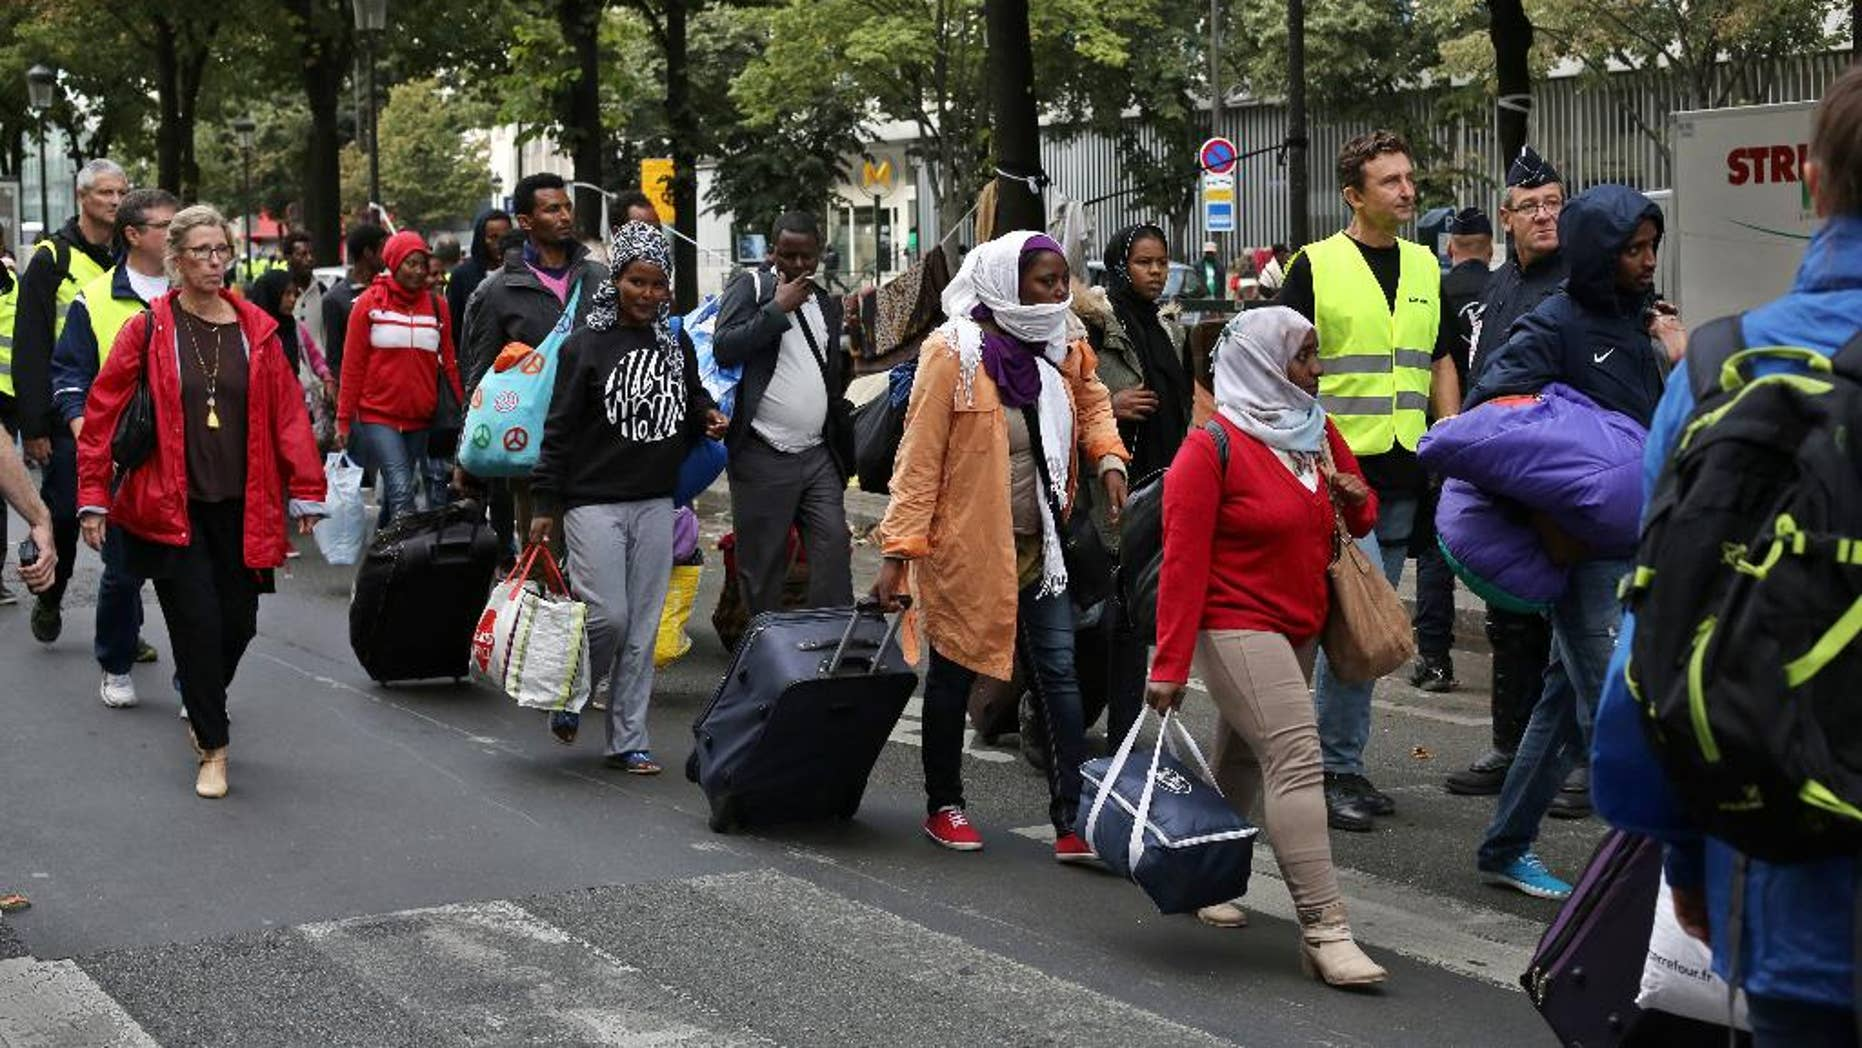 Migrants are evacuated from a camp in the north of Paris, Friday, Sept. 16, 2016. Police and city officials are evacuating hundreds of migrants who had been living on the streets of northern Paris for weeks, in the latest of a string of attempts to find solutions for France's migrants. (AP Photo/Thibault Camus)